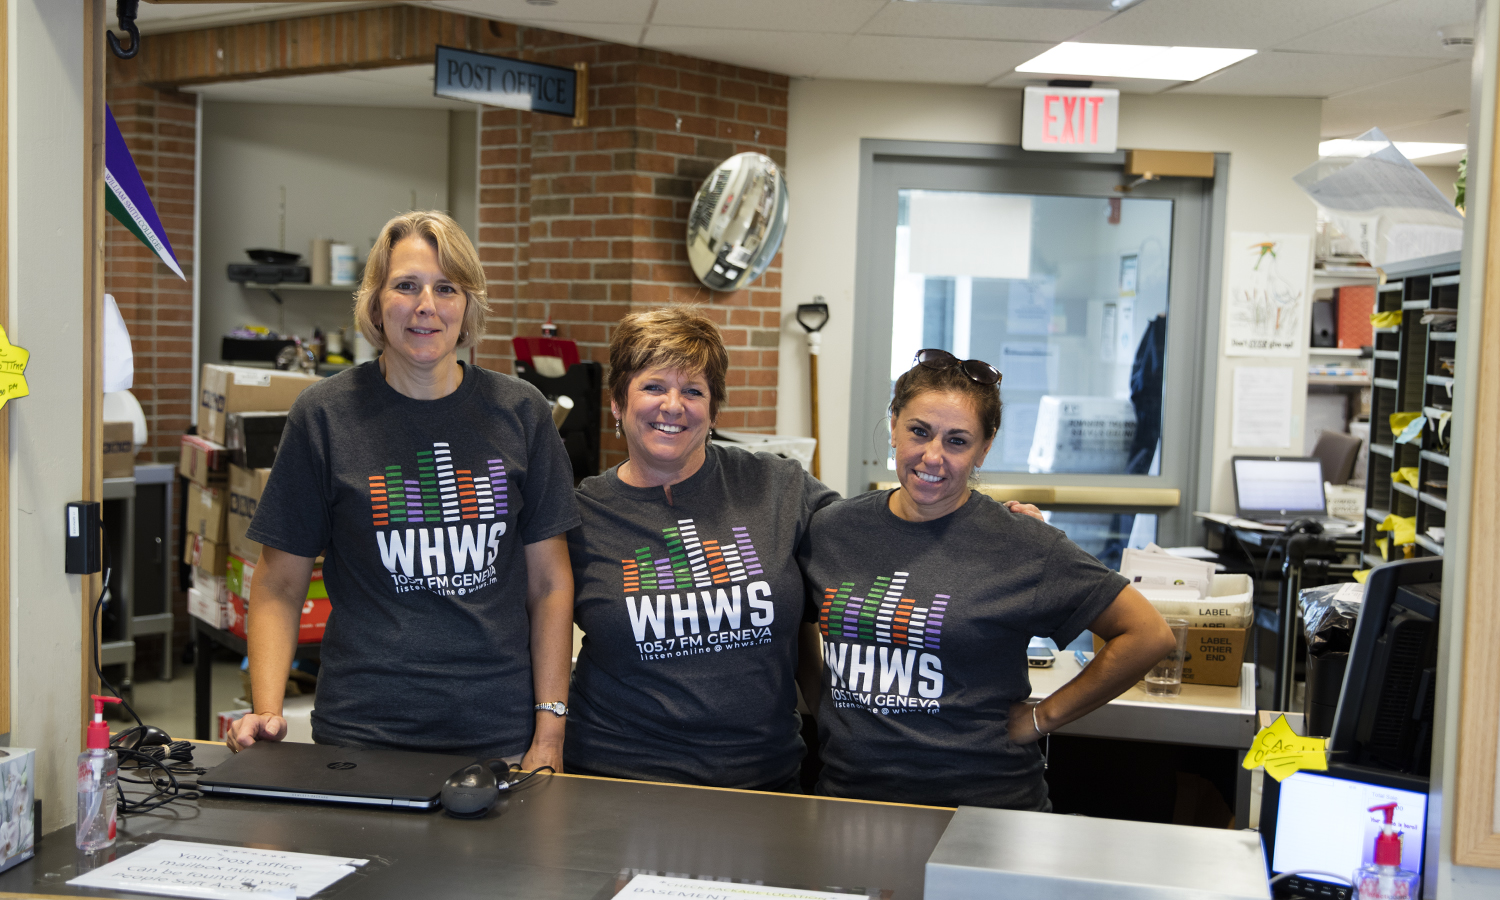 Postoffice staff with WHWS Shirts-0014